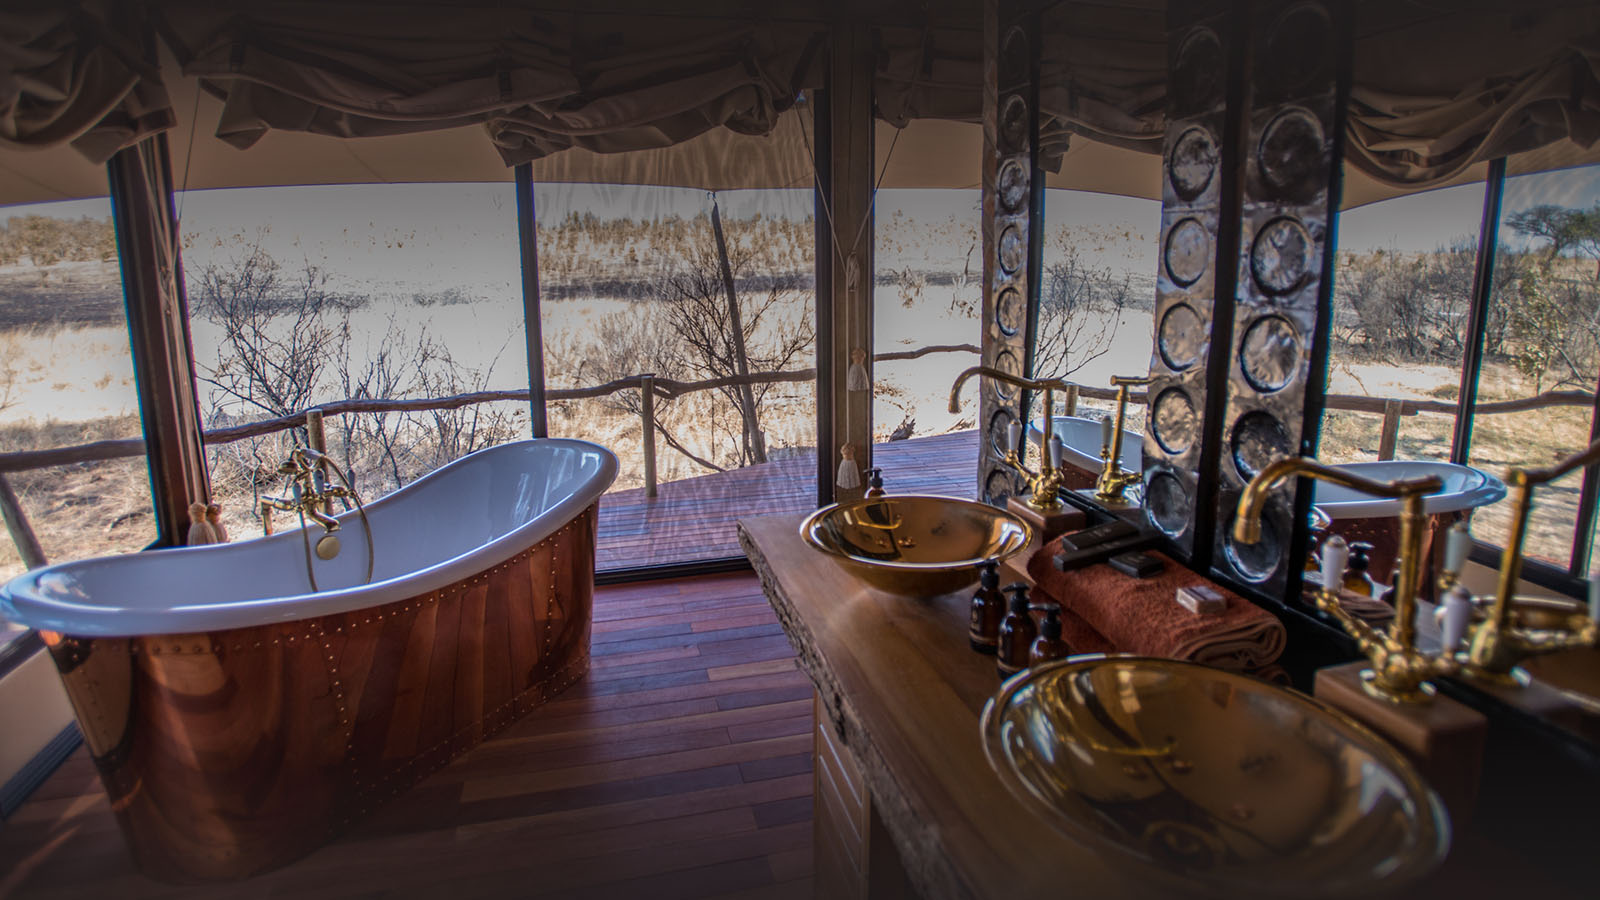 somalisa camp zimbabwe-lodges-zambia-in-style-safaris-wildlife-africa-hwange-national-park-bathroom